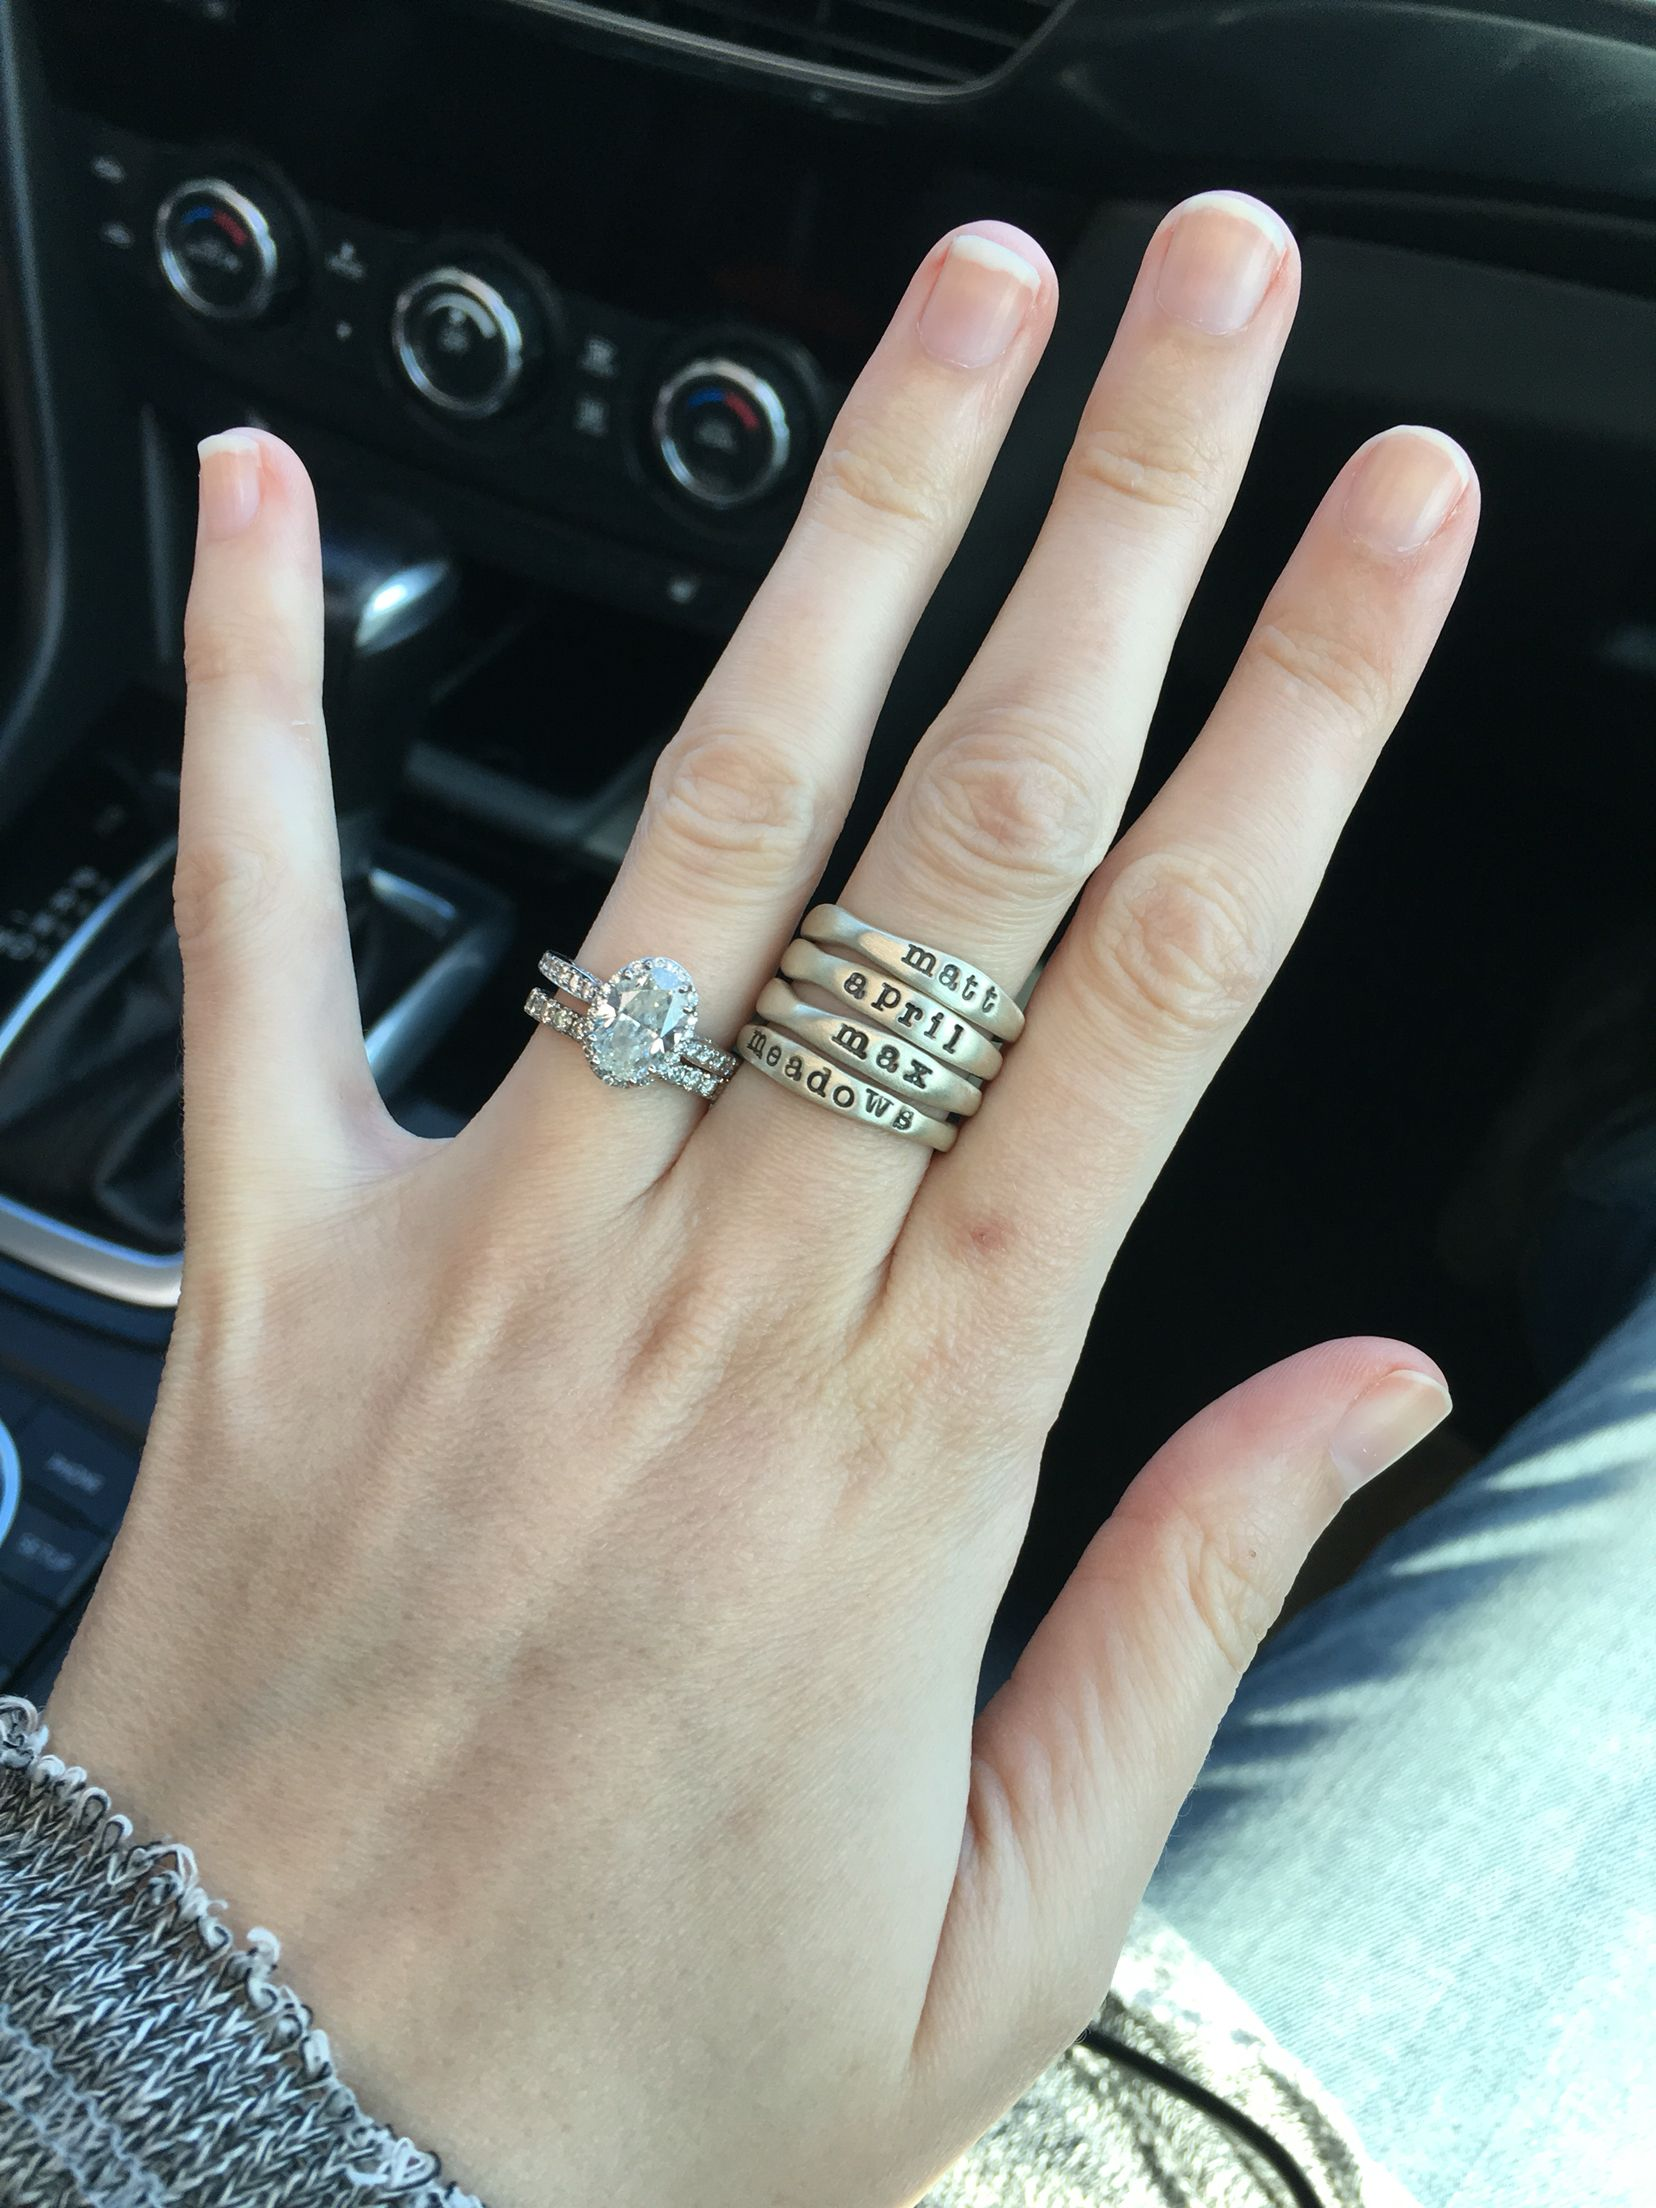 183ed8937ddc5 Lisa Leonard stacking name rings ...4 just like hers: Bill, Ryan ...